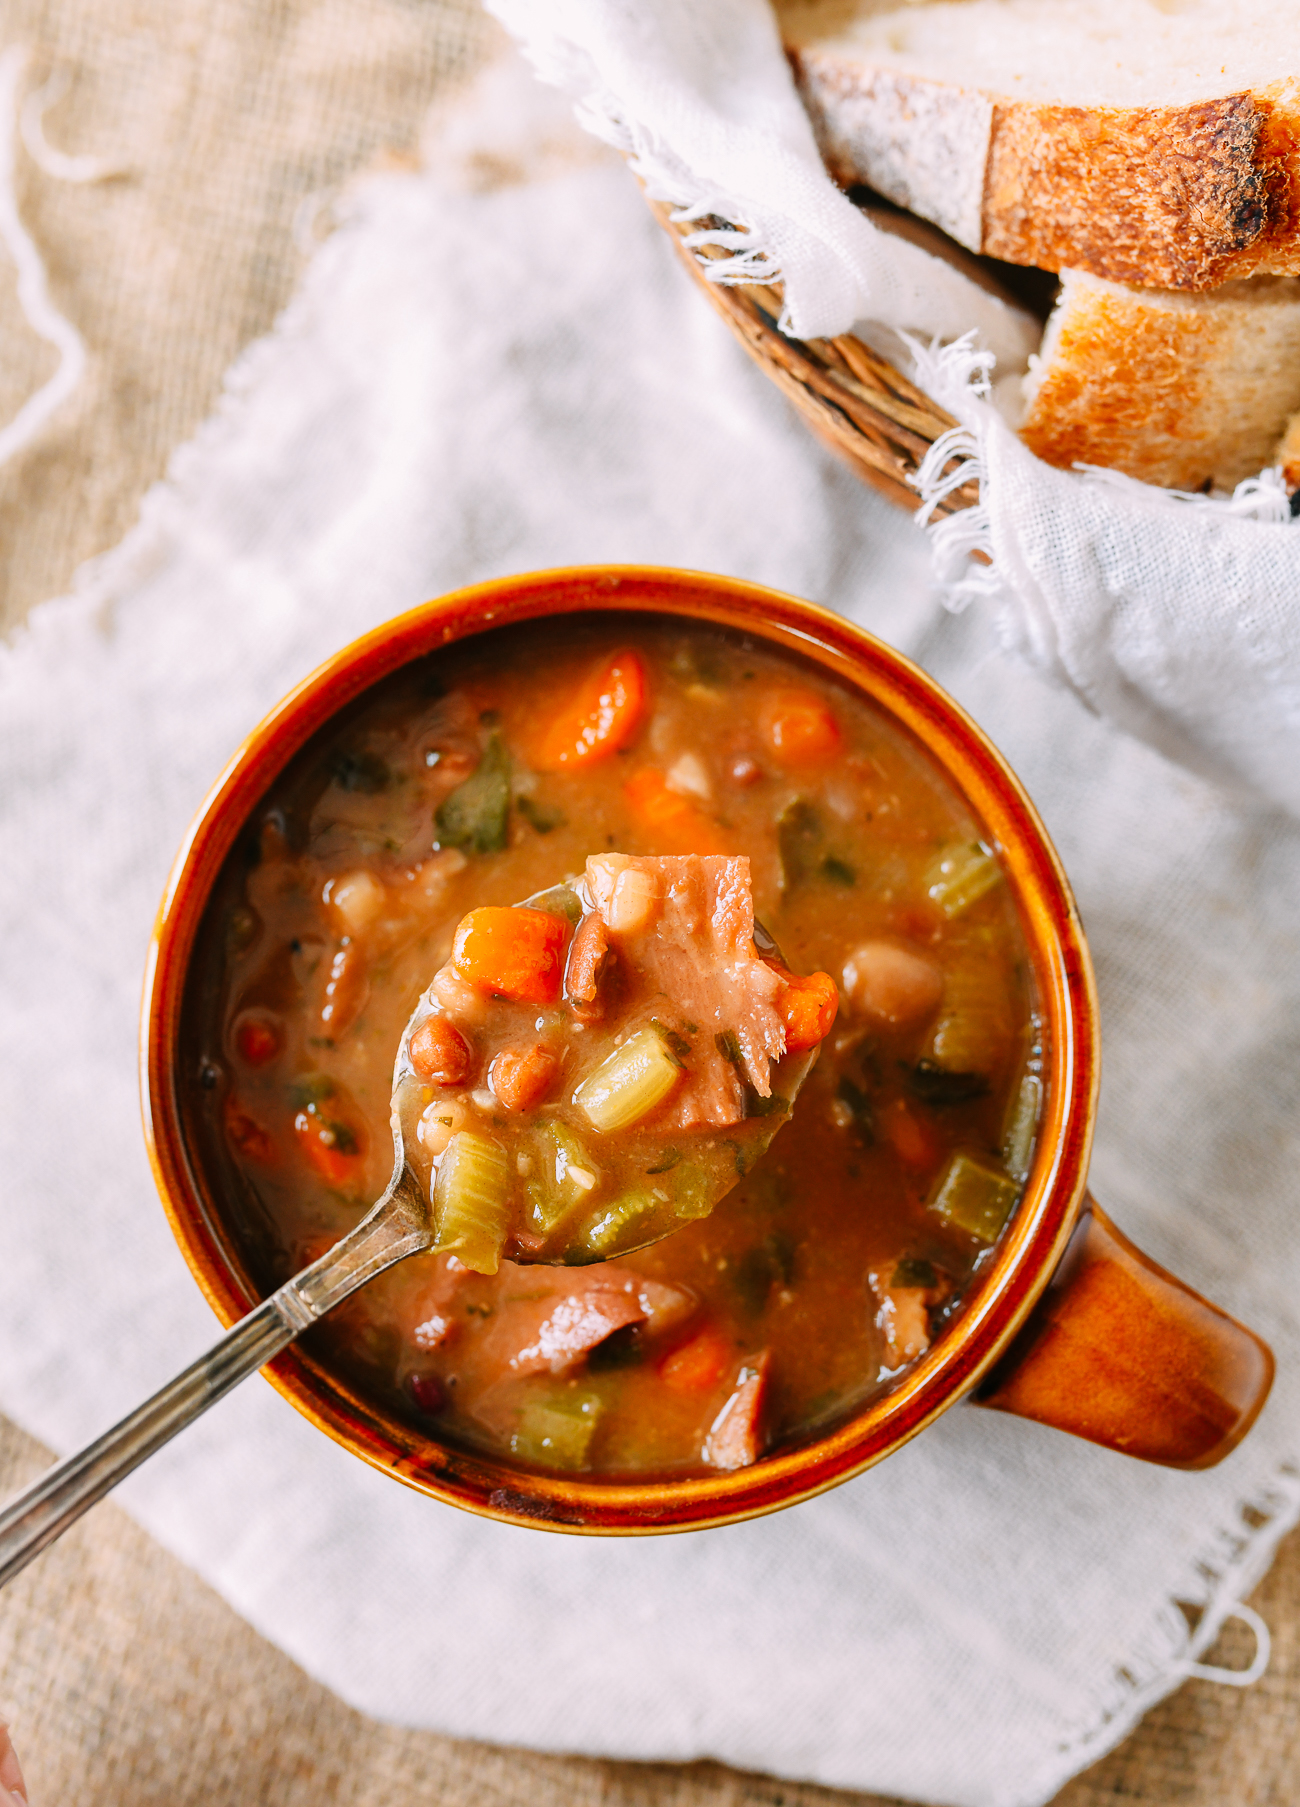 Spoon full of ham and bean soup